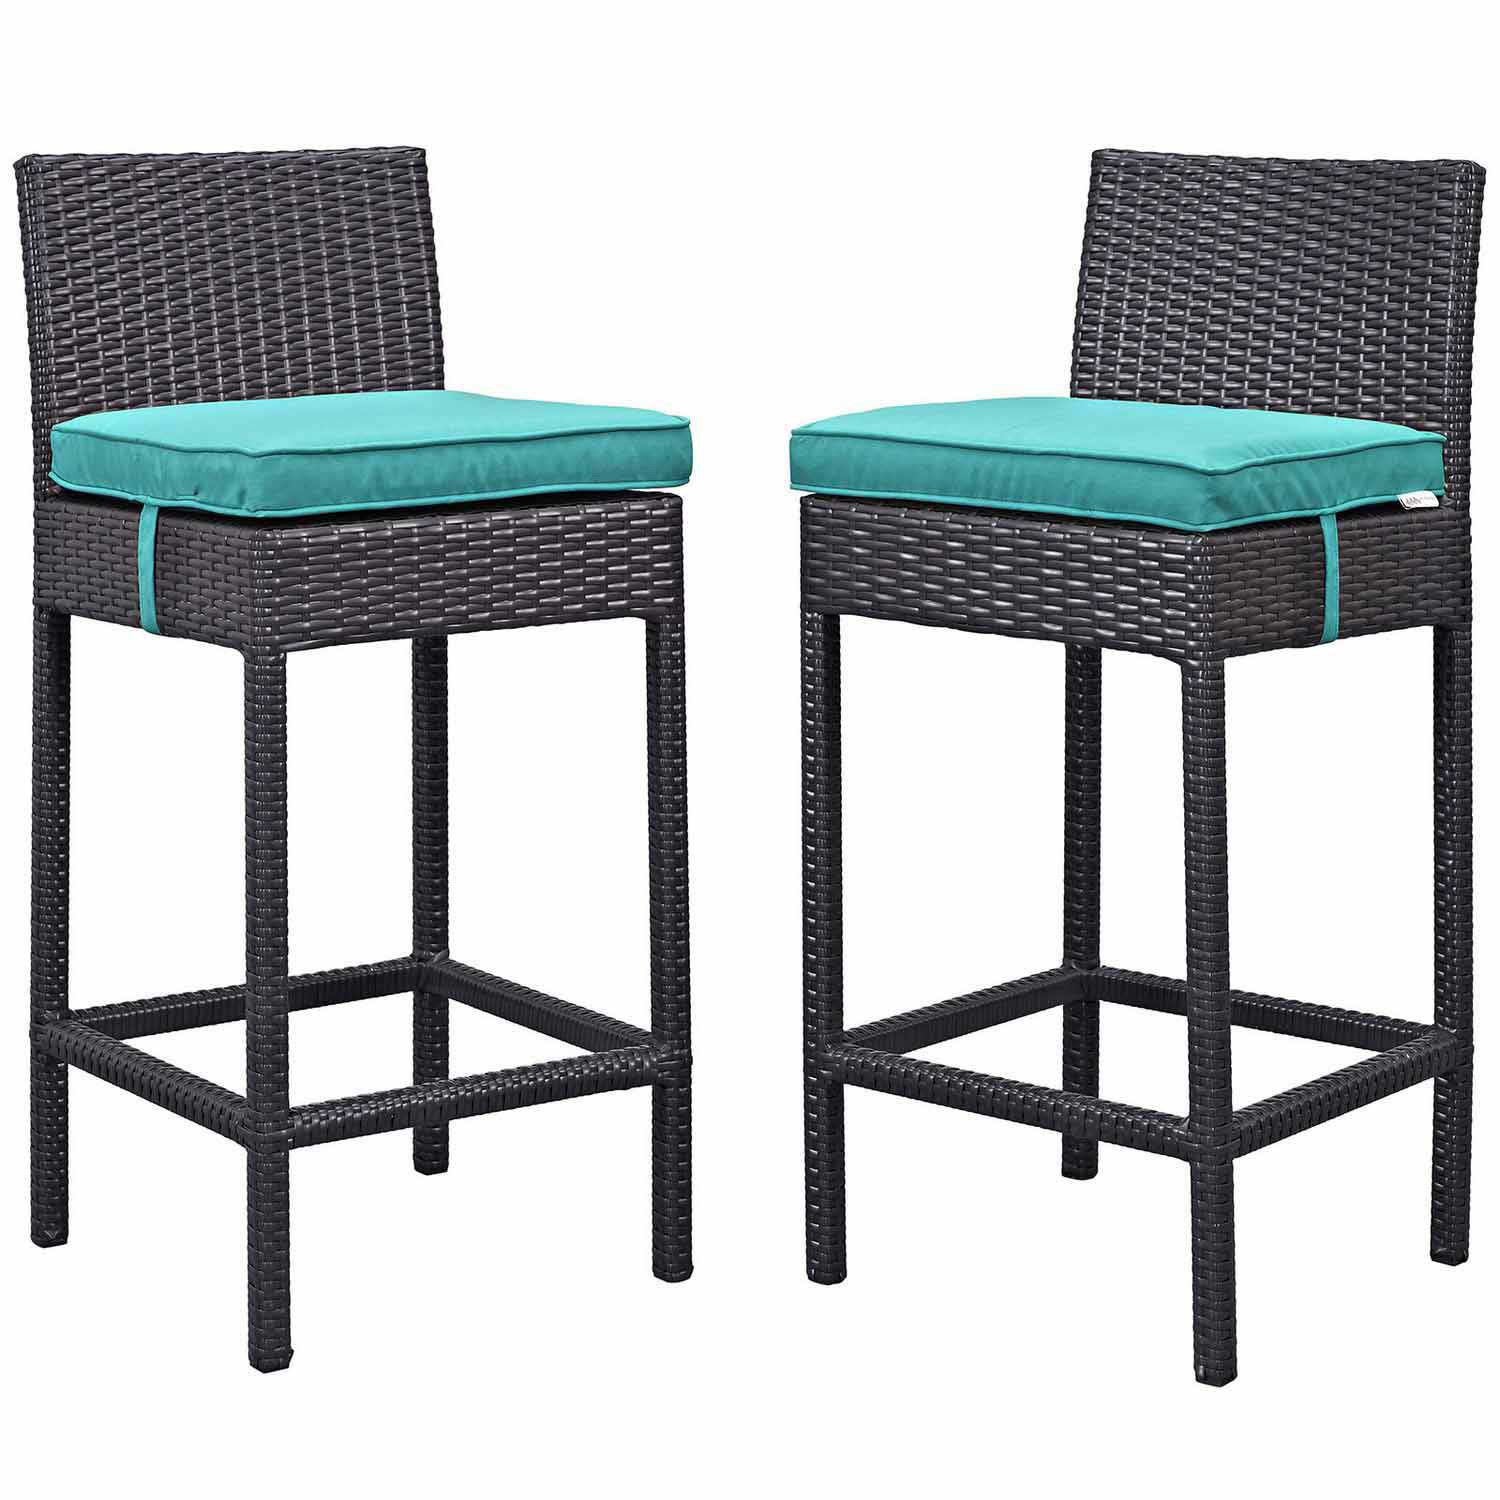 Modway Lift Bar Stool Outdoor Patio Set of 2 - Espresso Turquoise